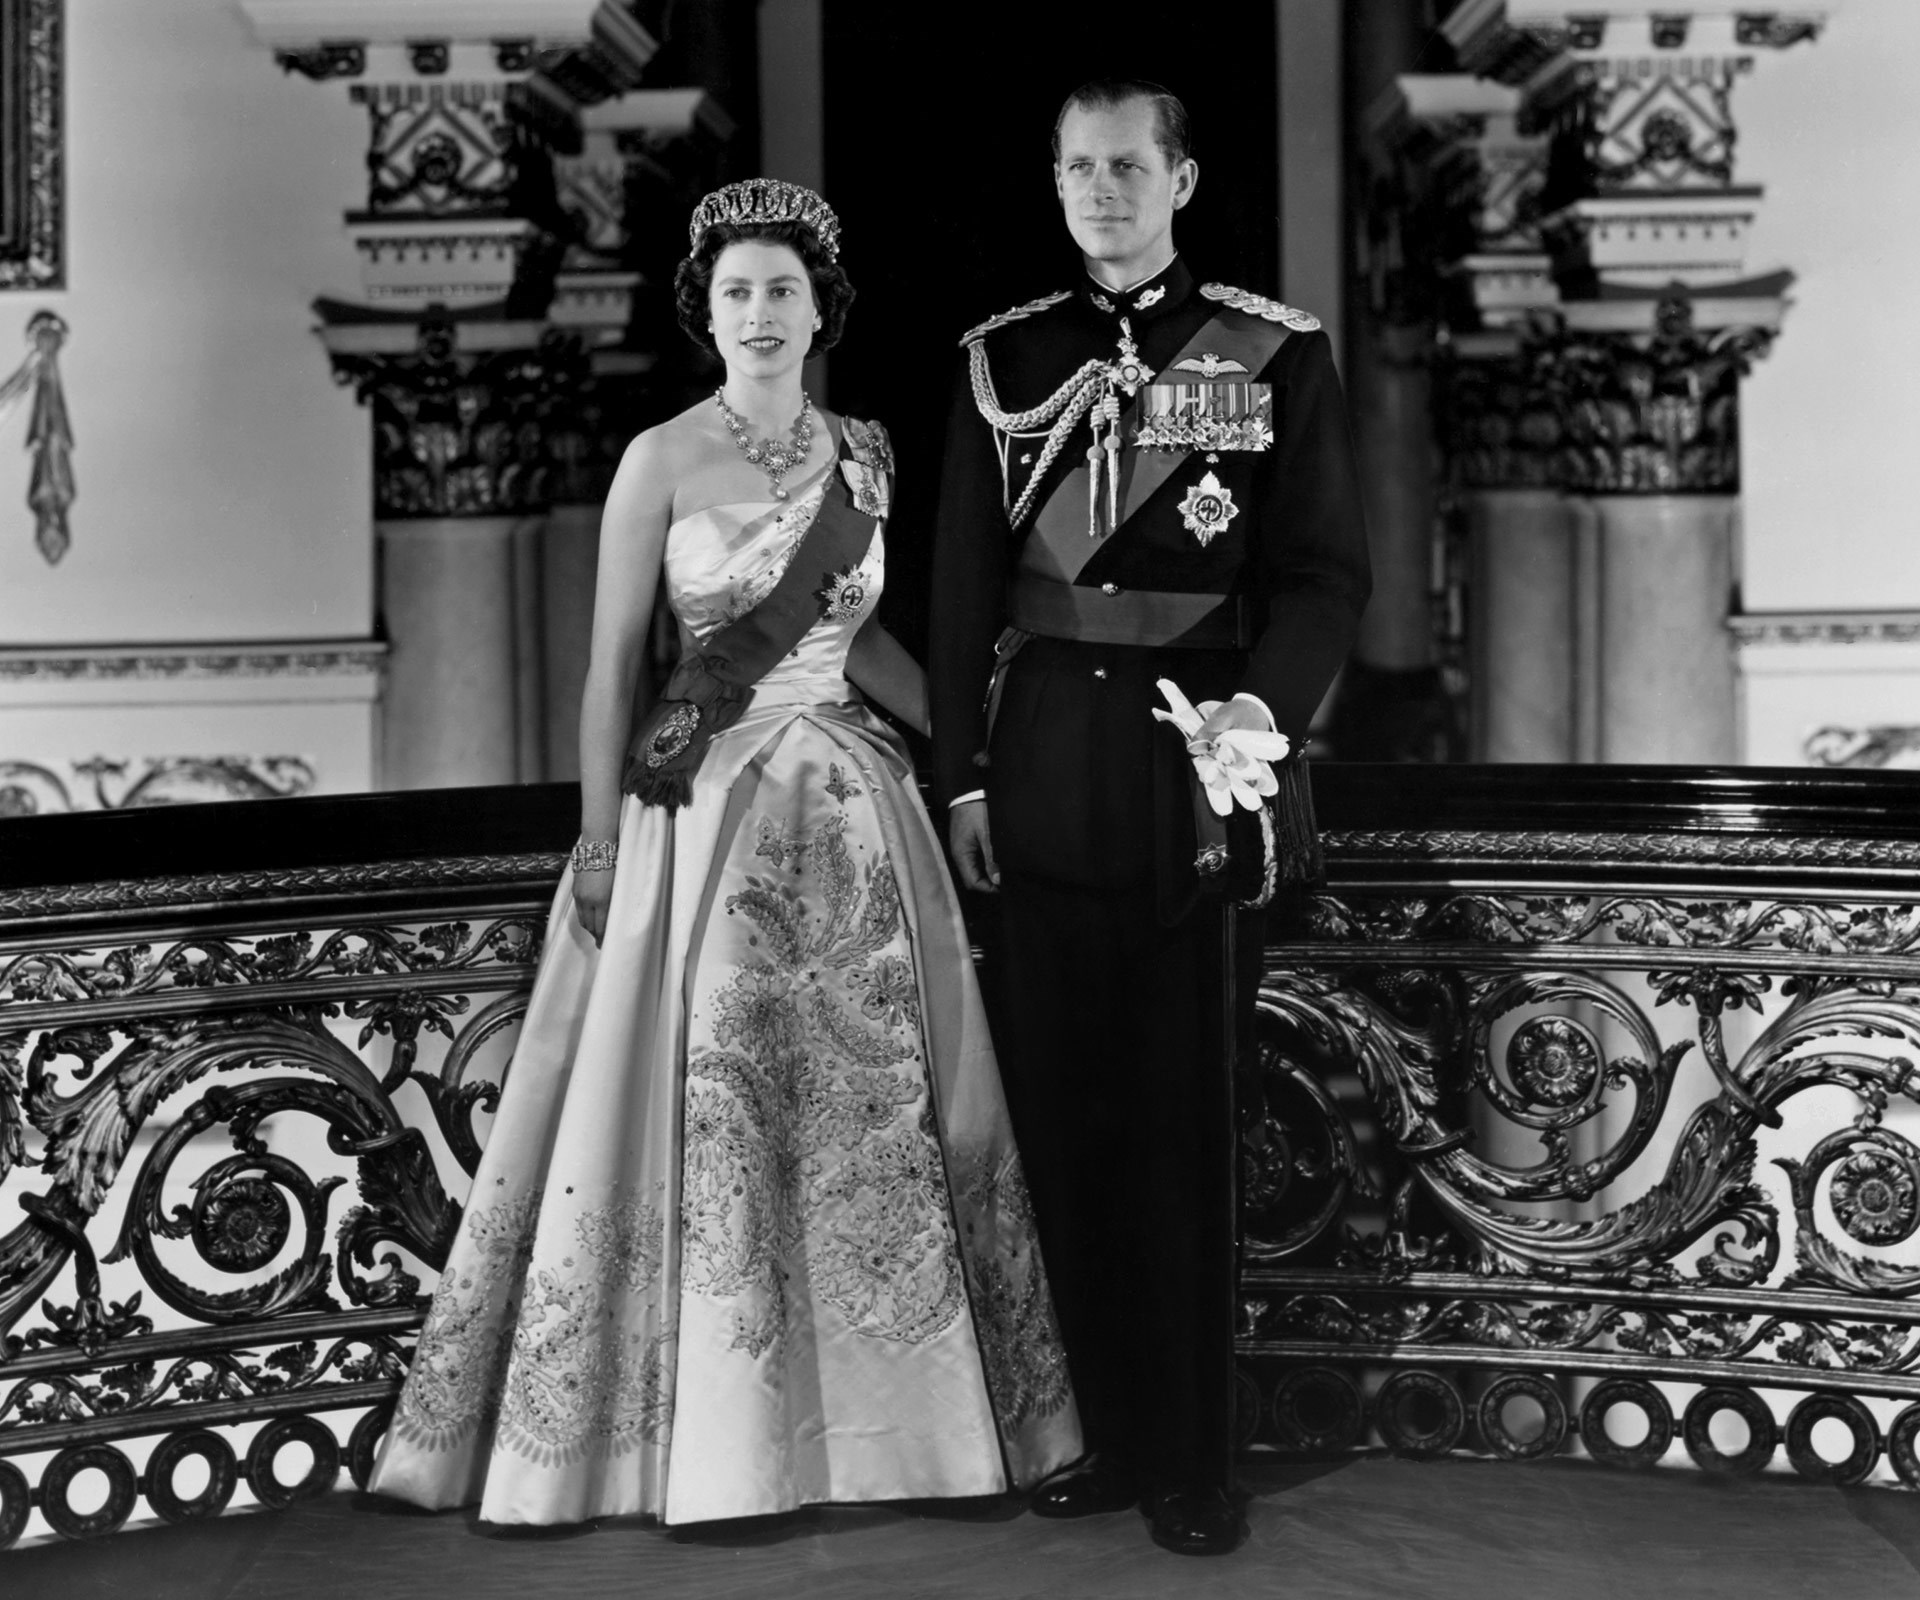 """Queen Elizabeth may be the longest-serving monarch, but we also admire the love she has for her husband, Prince Philip, 94. The pair tied the knot in breath-taking ceremony back in November 1947. When Philip first met Elizabeth he recalled: """"You were so shy. I couldn't get a word out of you."""""""